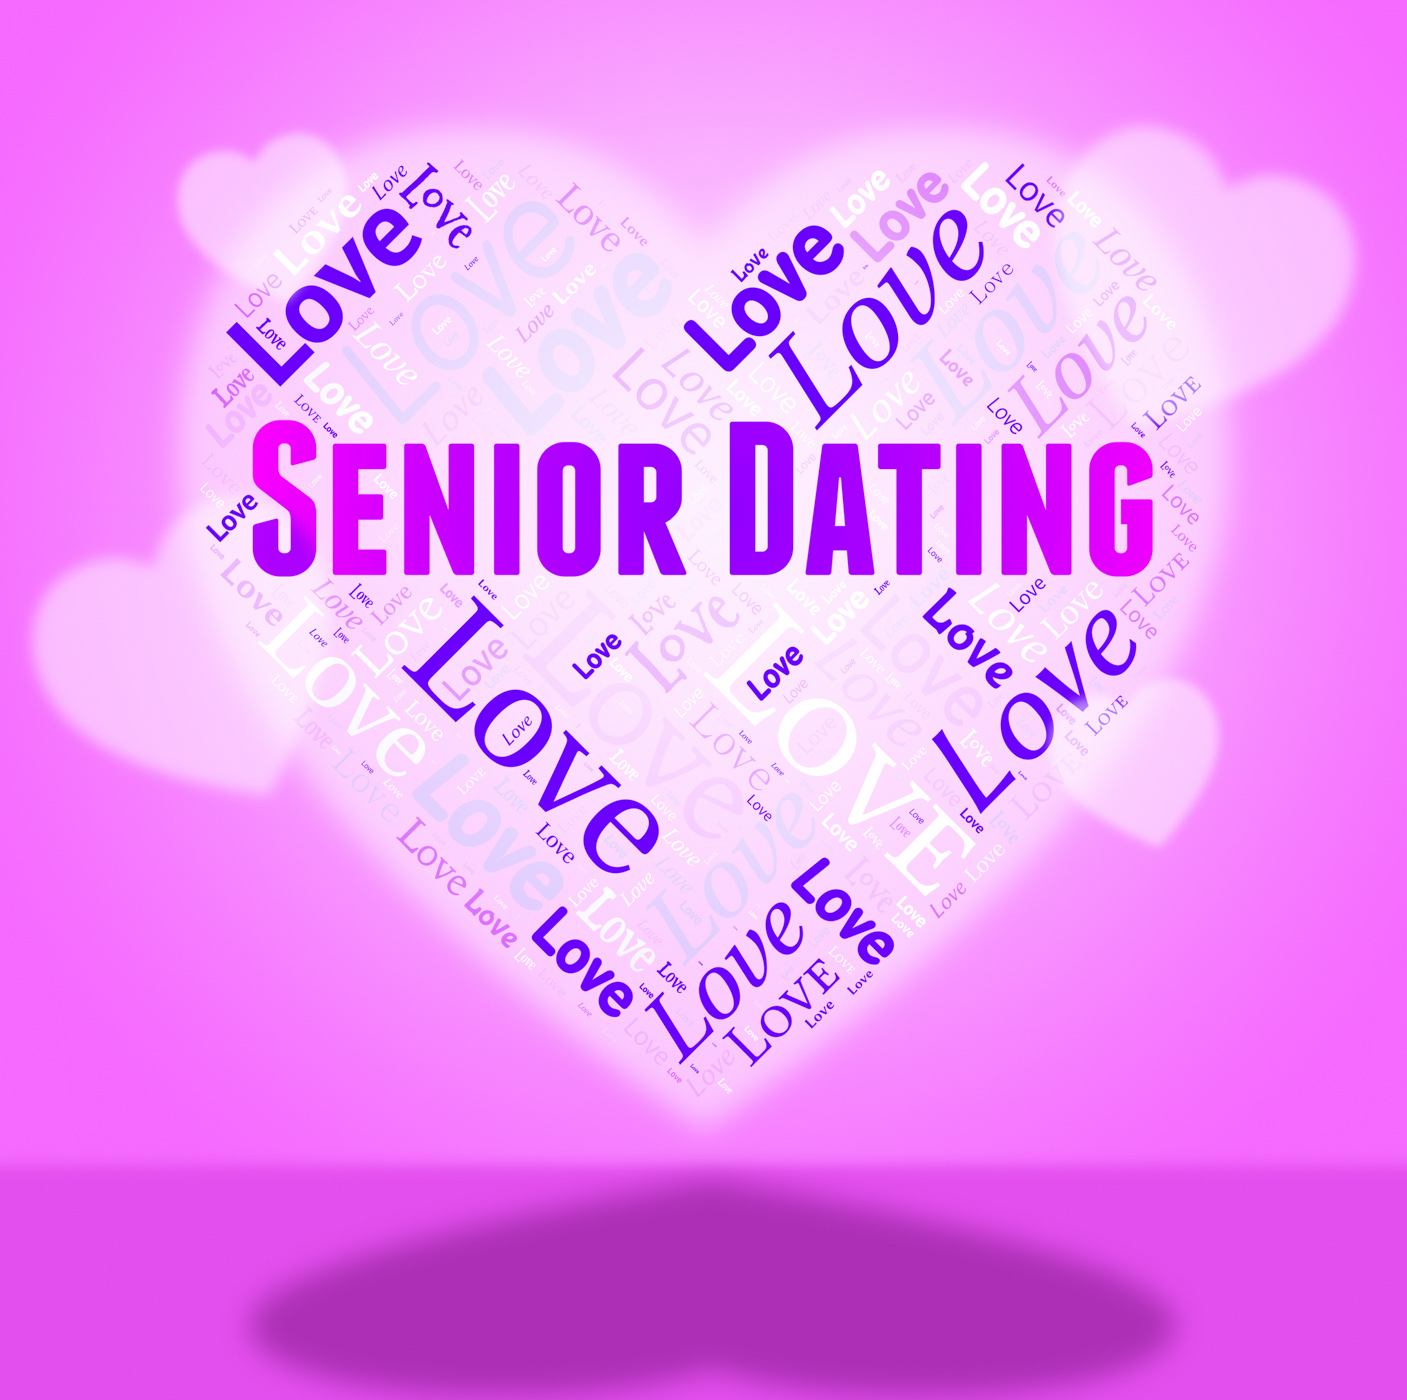 Senior dating represents retired sweethearts and dates photo